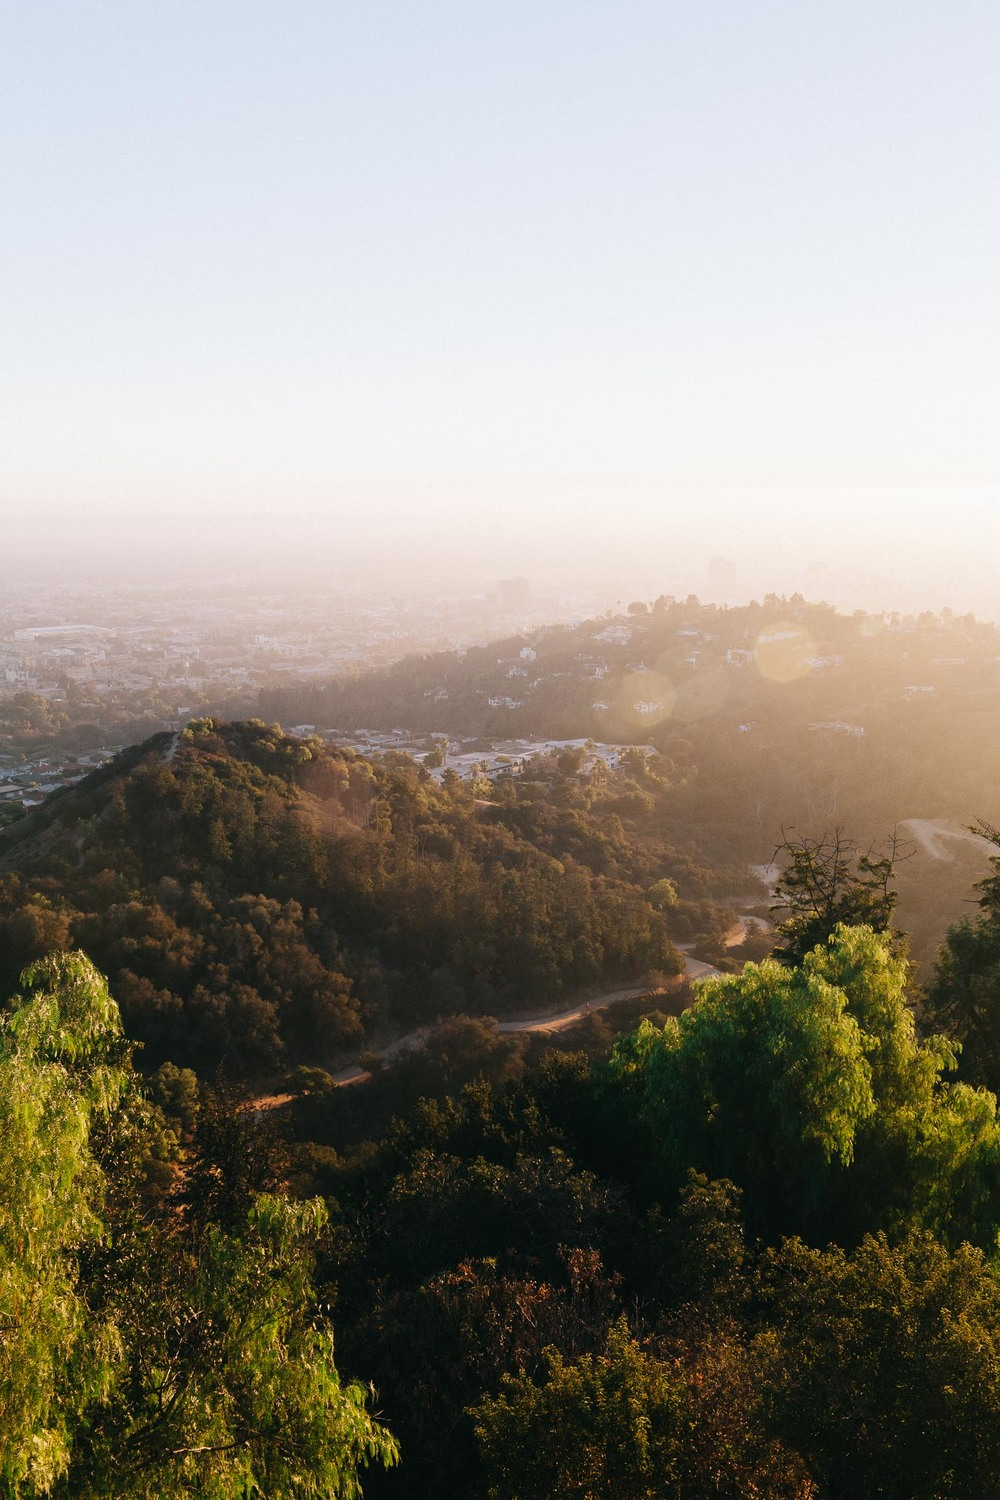 california October 2014 - travel photography by On a hazy mornin